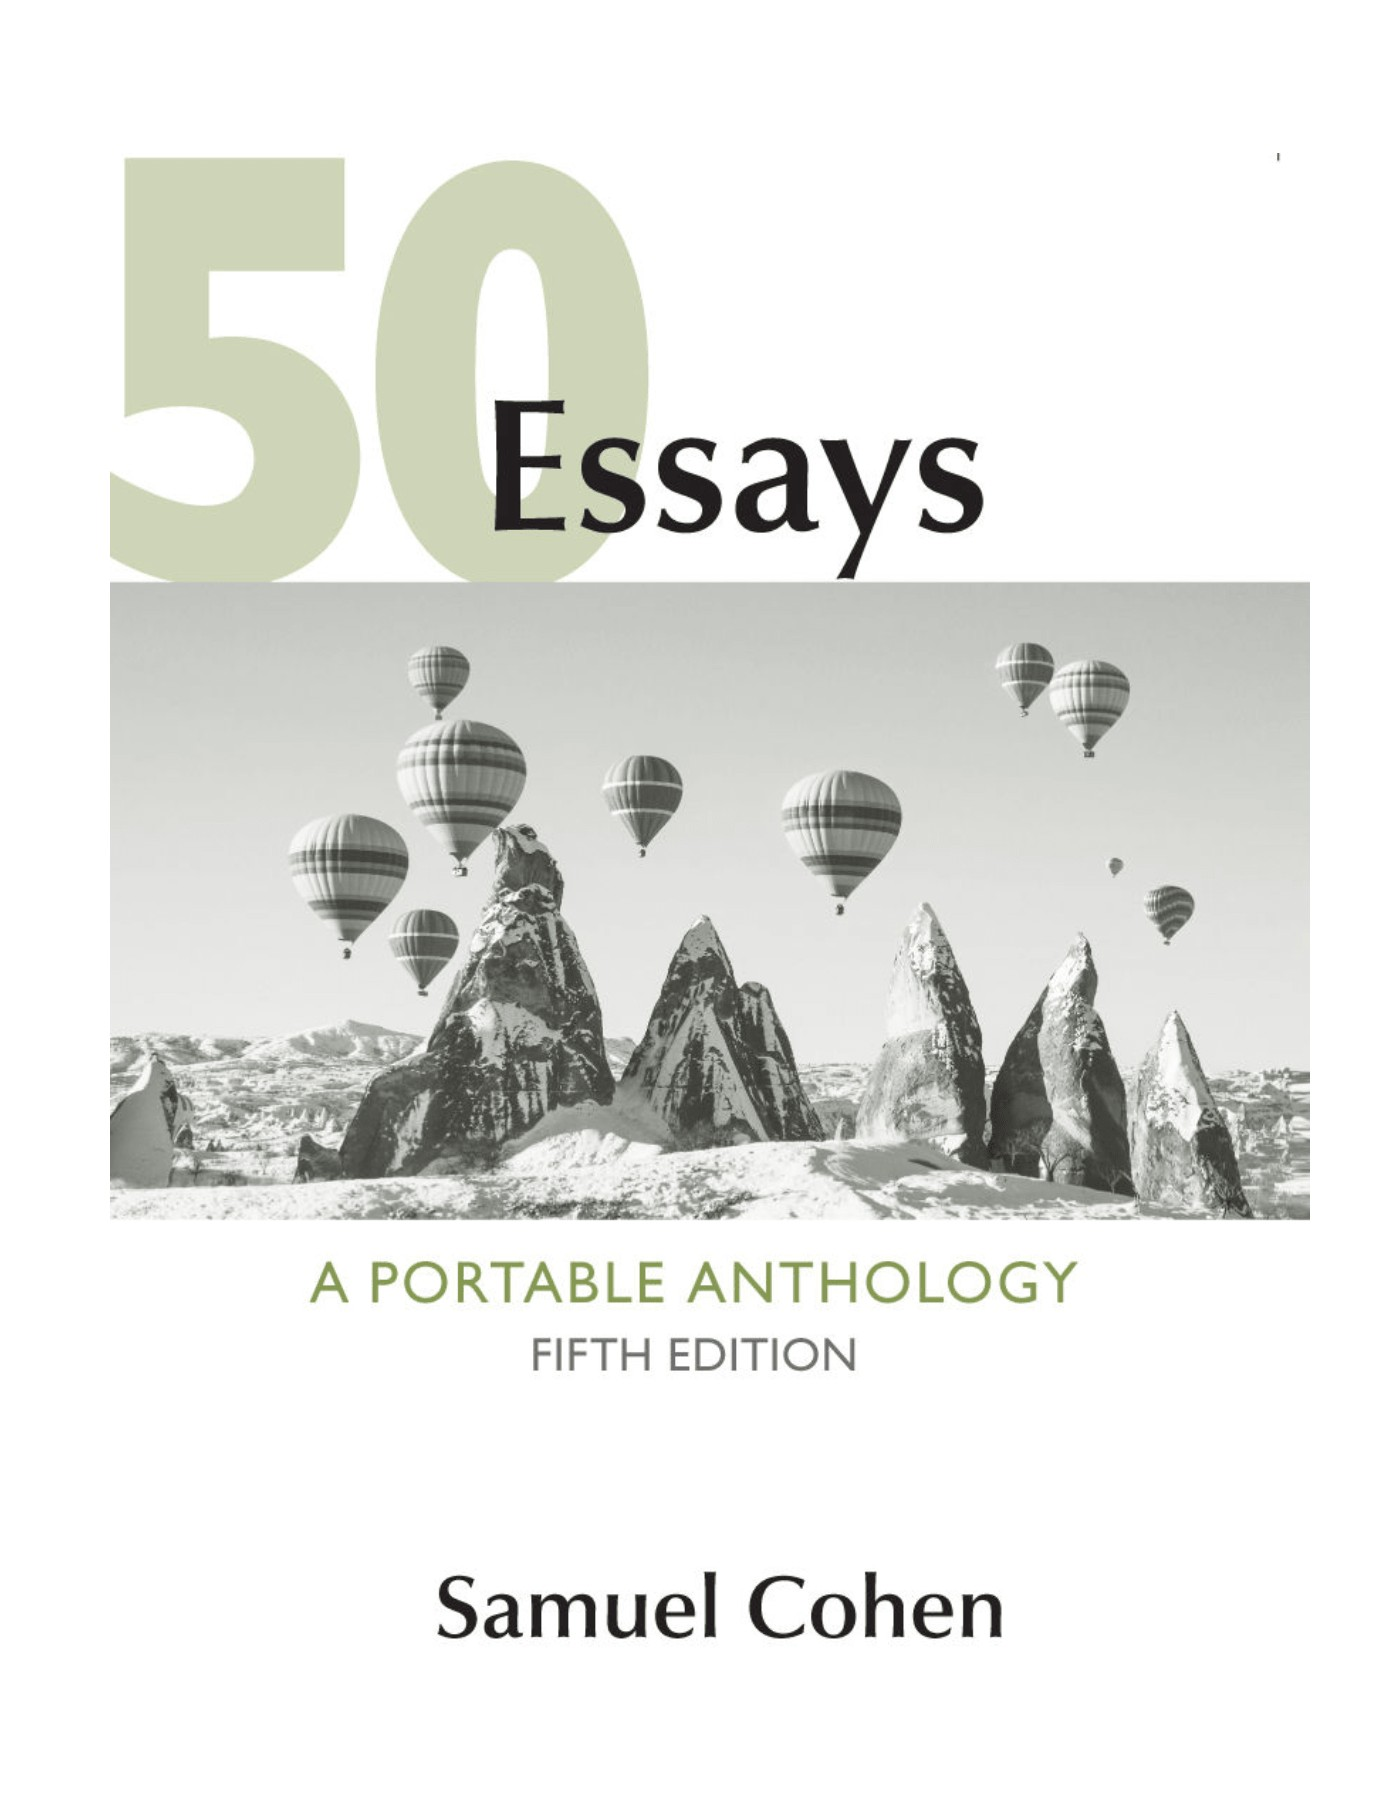 012 50fit14002c1800ssl1 Essay Example Essays Portable Anthology 4th Edition Awful 50 A Pdf Free 1400